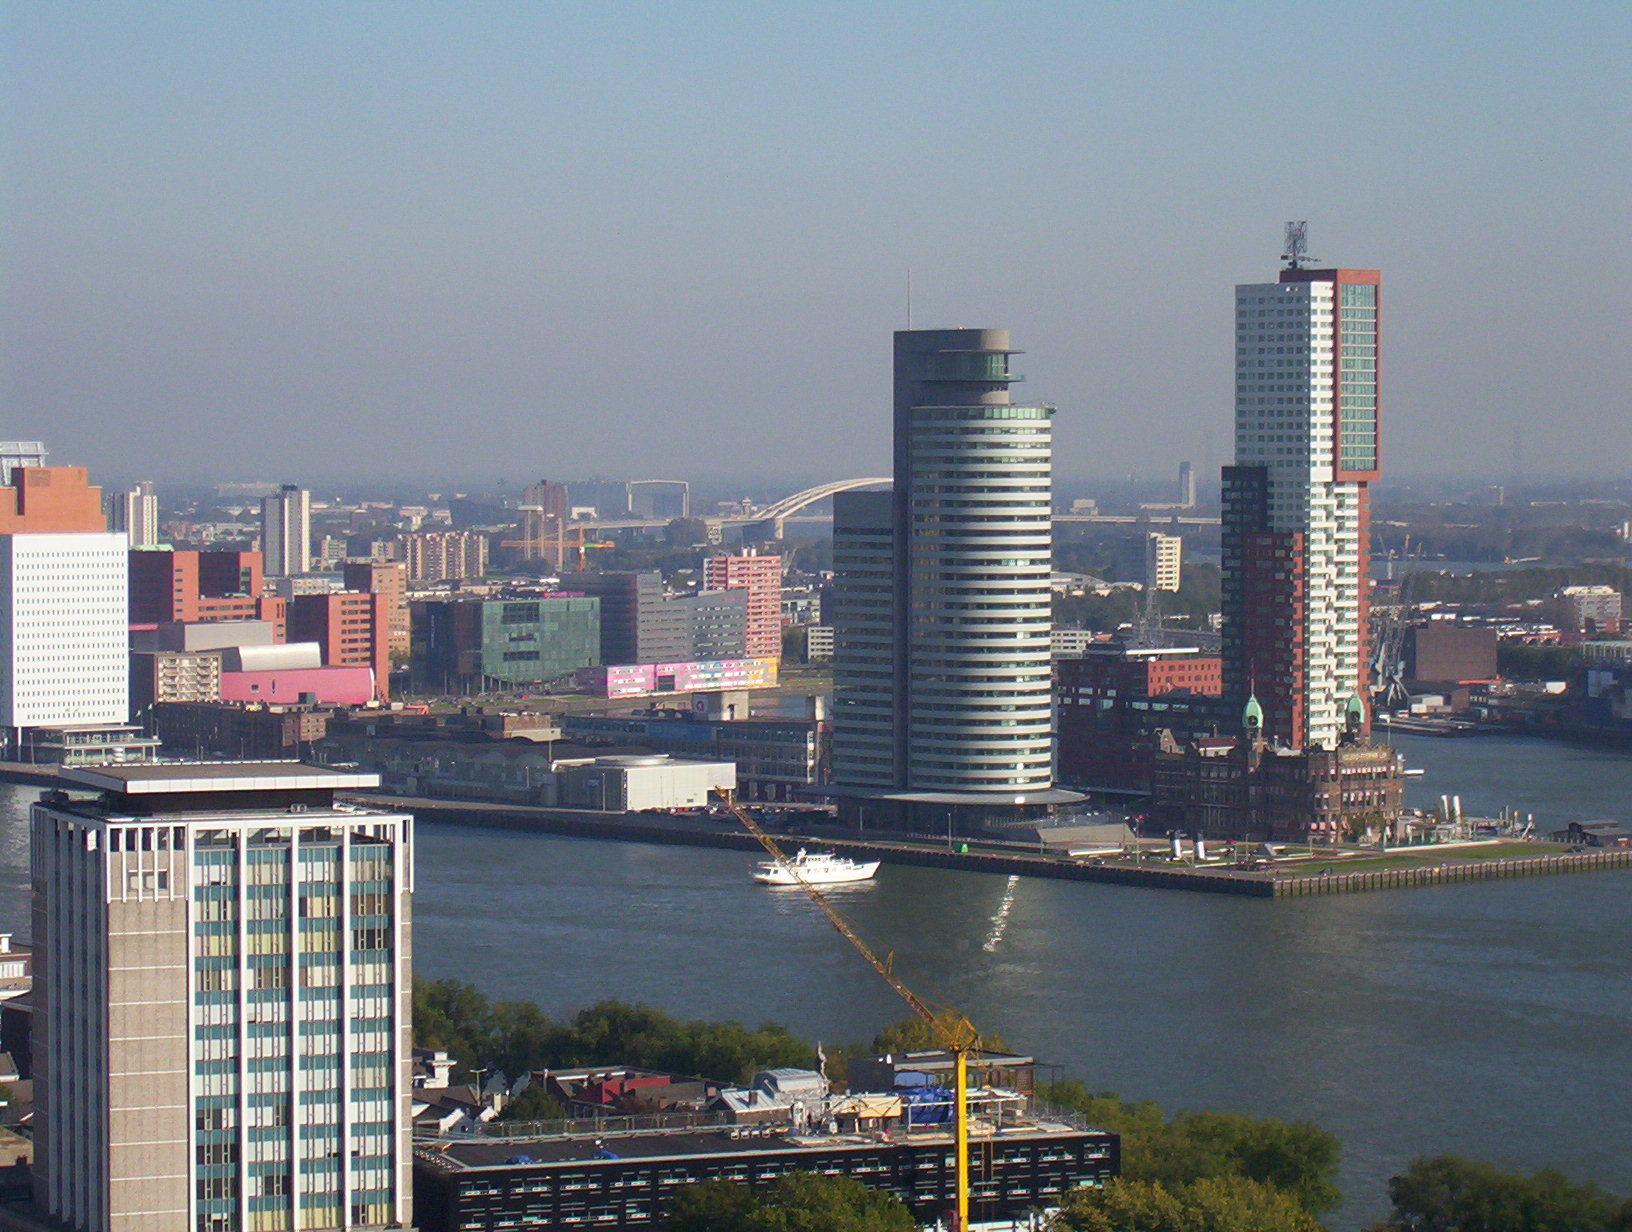 Rotterdam Netherlands  City pictures : The Netherlands images Rotterdam HD wallpaper and background photos ...